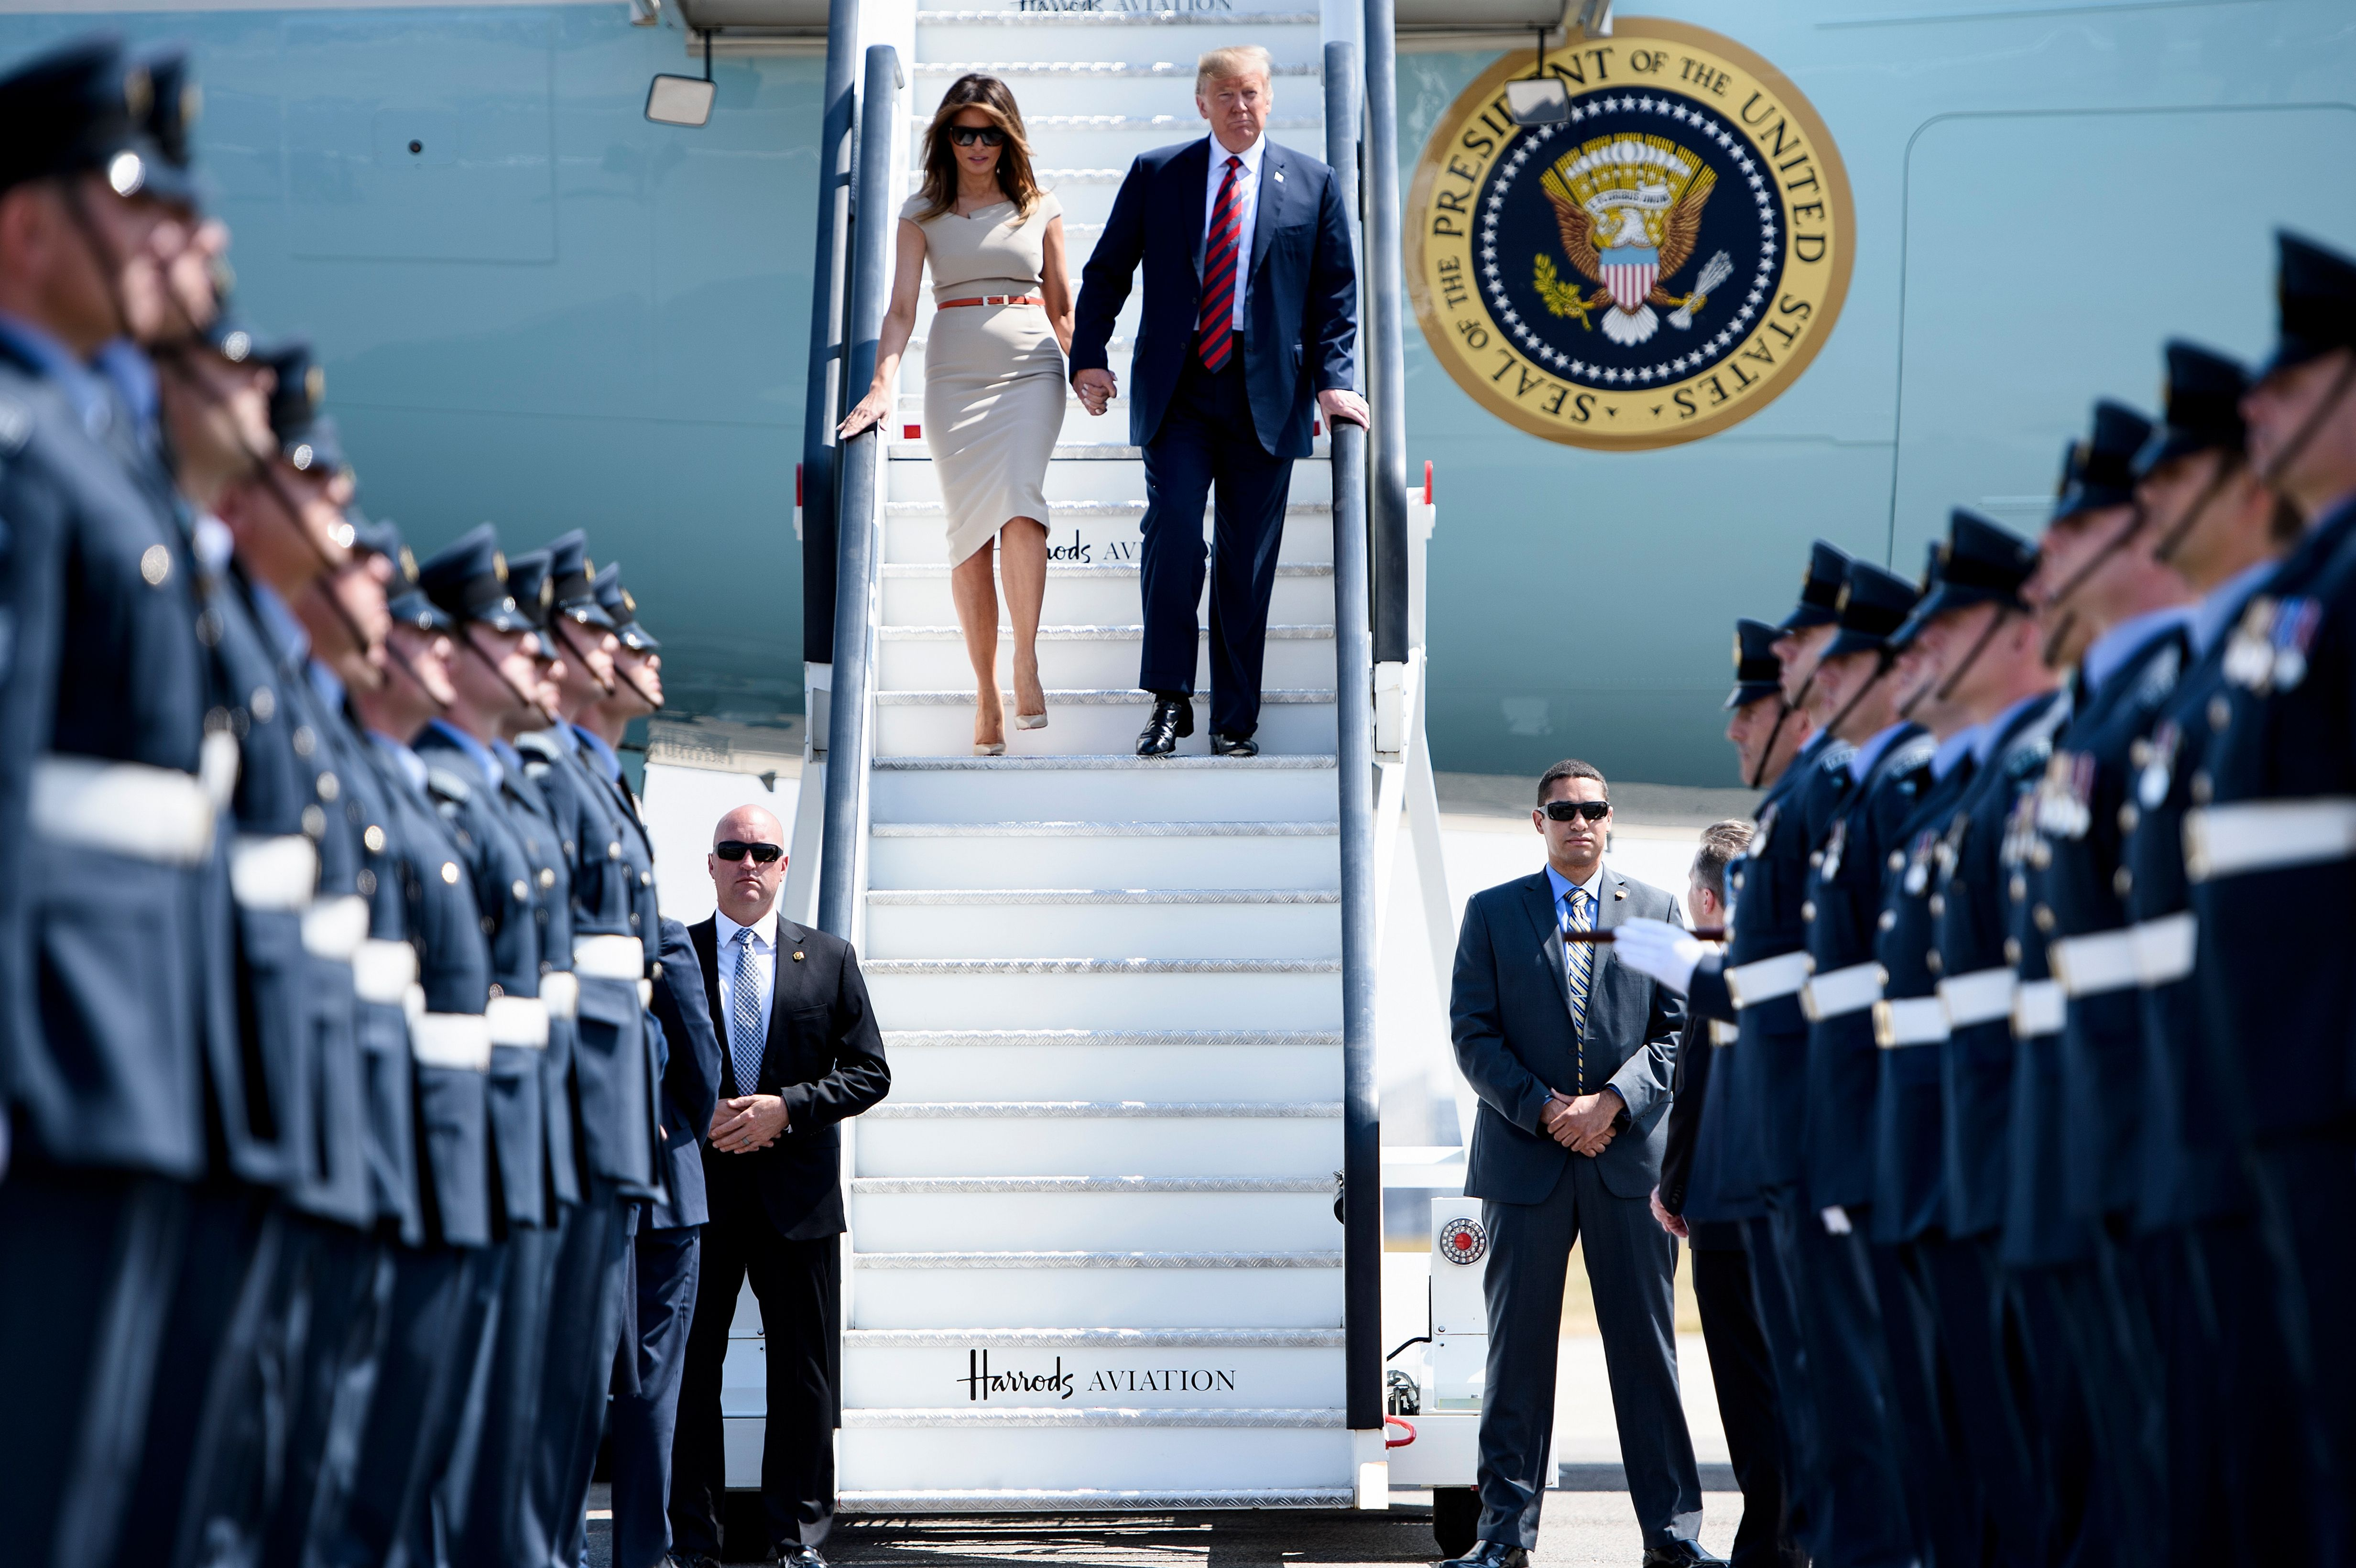 Trump and the first lady disembark Air Force One at Stansted Airport, north of London, on Thursday.